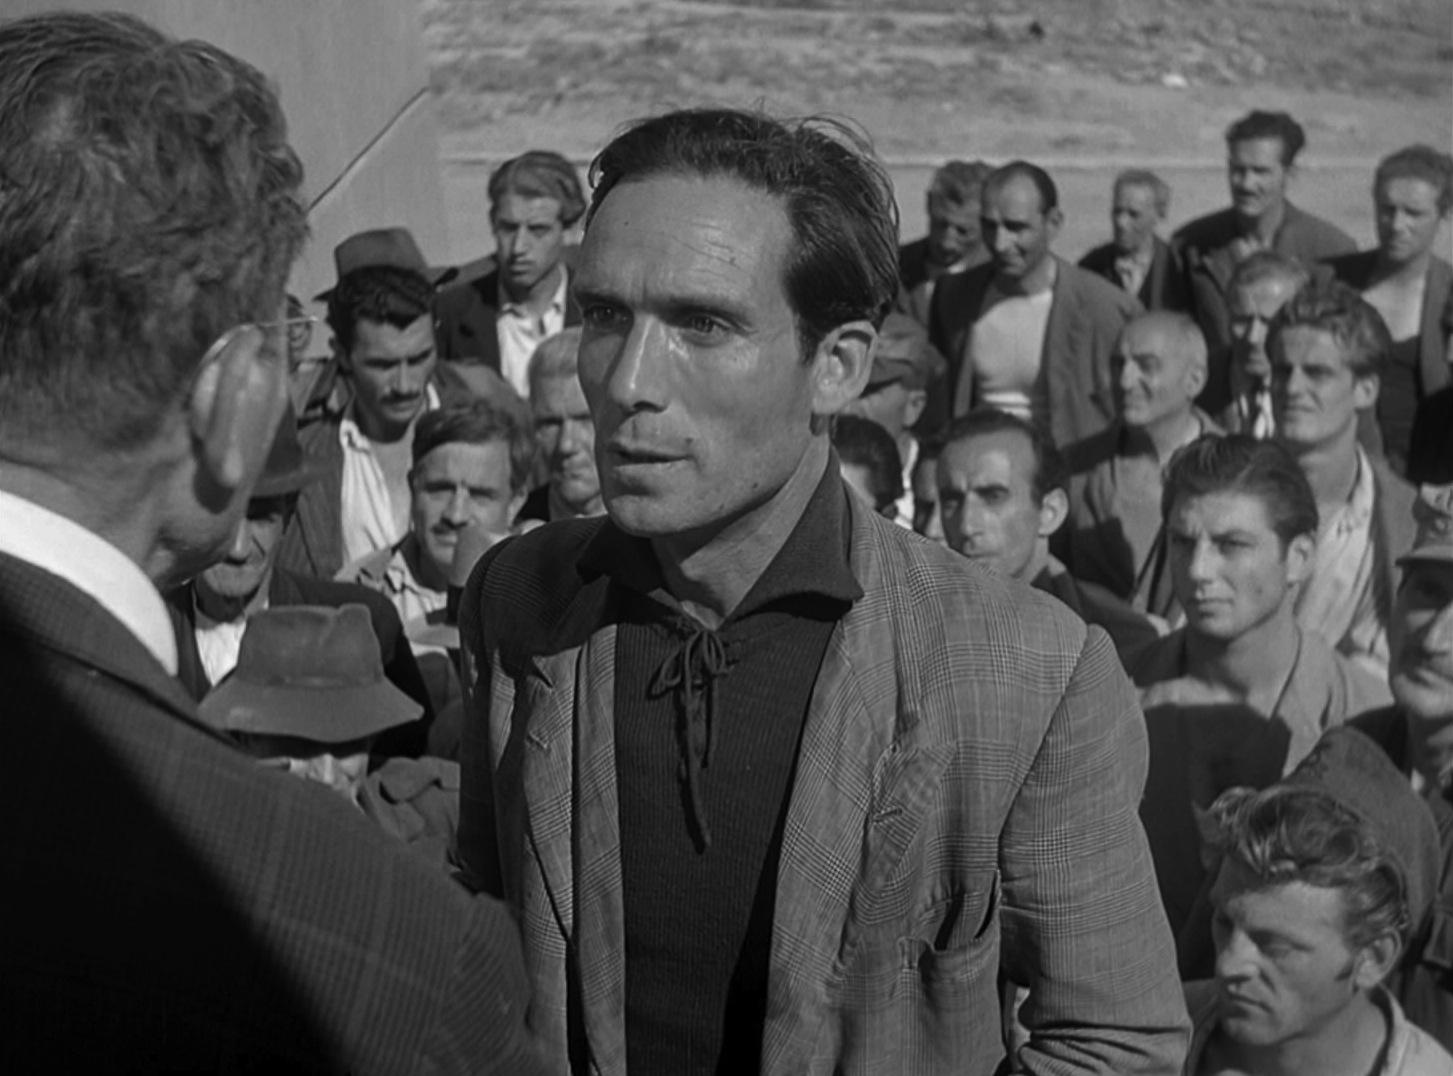 essays on italian neorealism To critically evaluate the influences of neorealist aesthetics on rome, open city (1945) and 8½ (1963) i believe there are several measure i have to take first of all, i believe it is essential to get a clear understanding of italian neorealism and the common aesthetics of neorealist films once i.